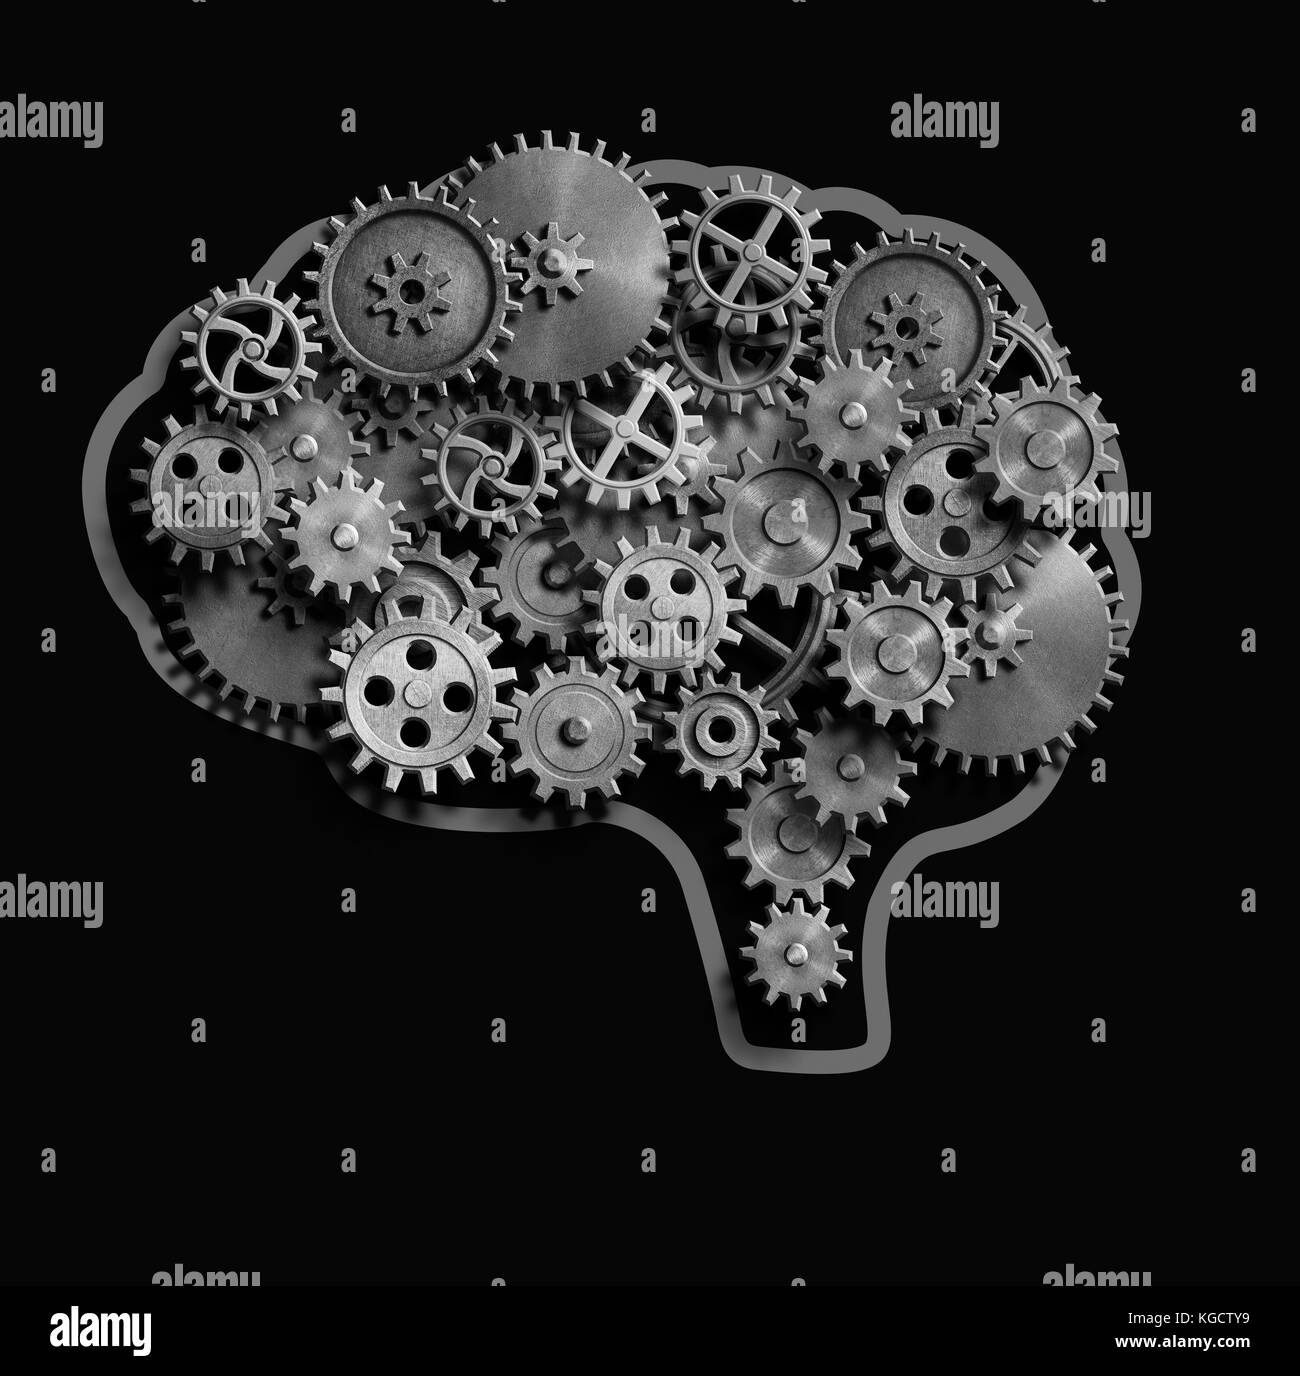 Brain made from metal gears and cogs 3d illustration - Stock Image